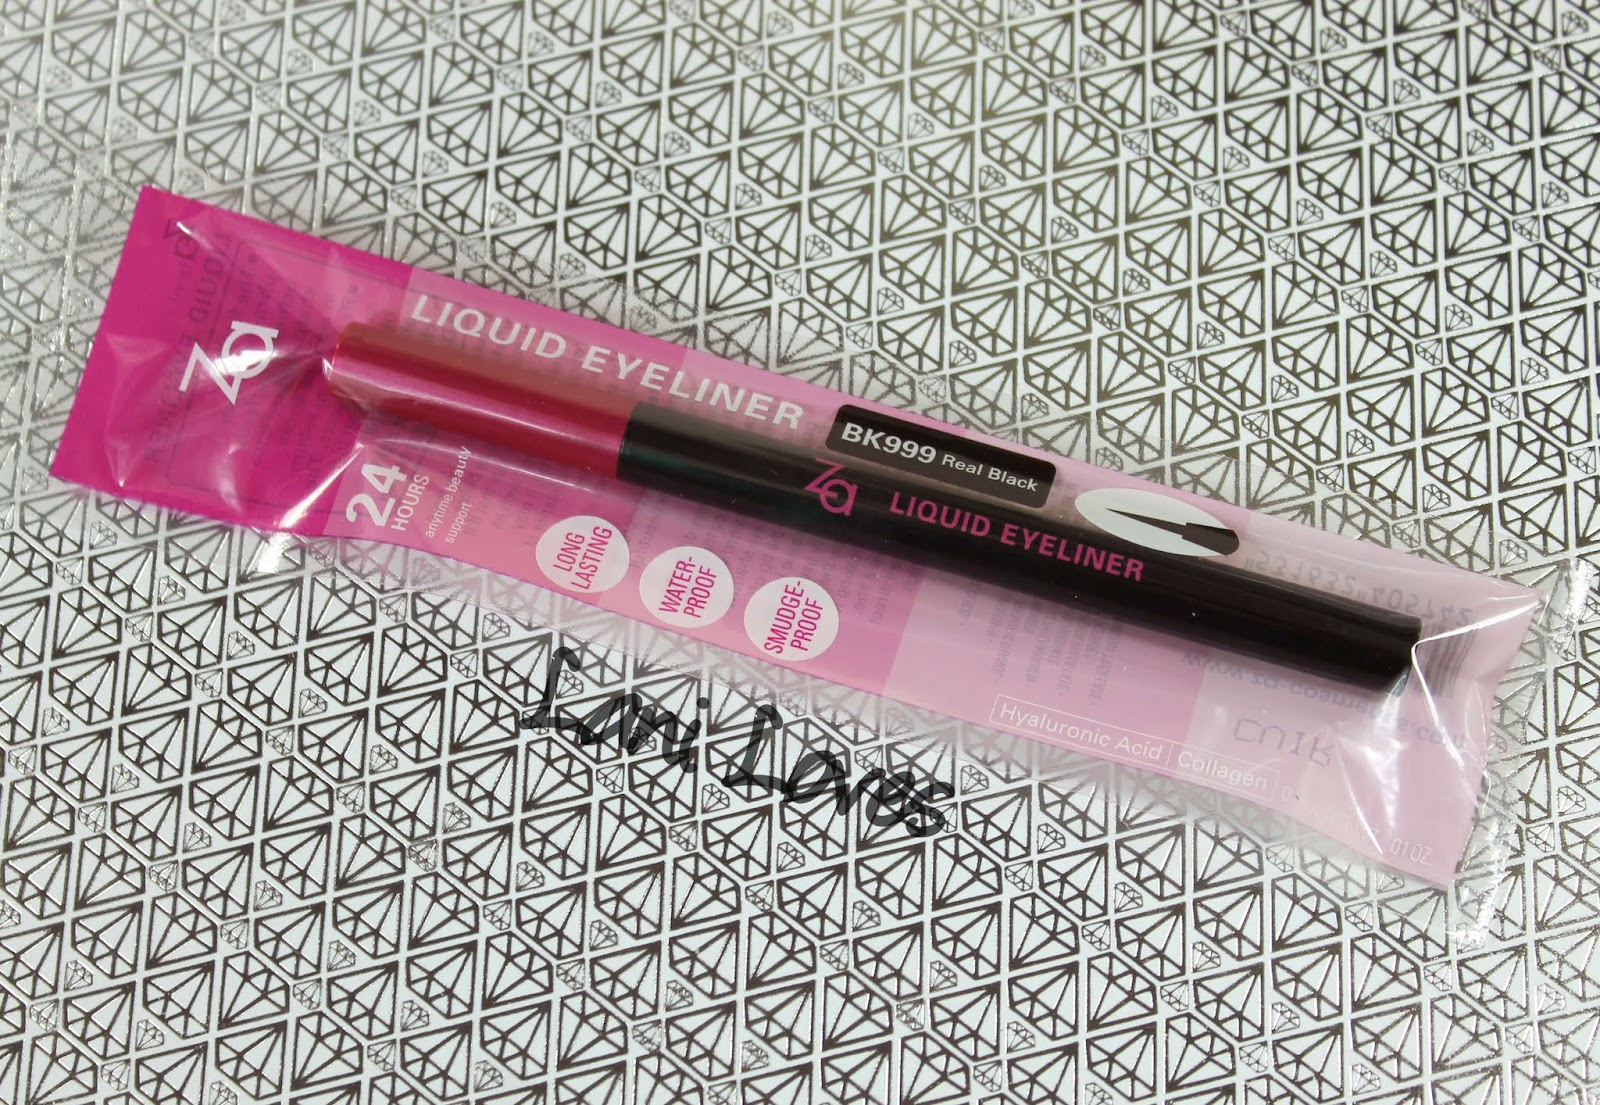 ZA Liquid Eyeliner - BK999 Real Black Swatches & Review